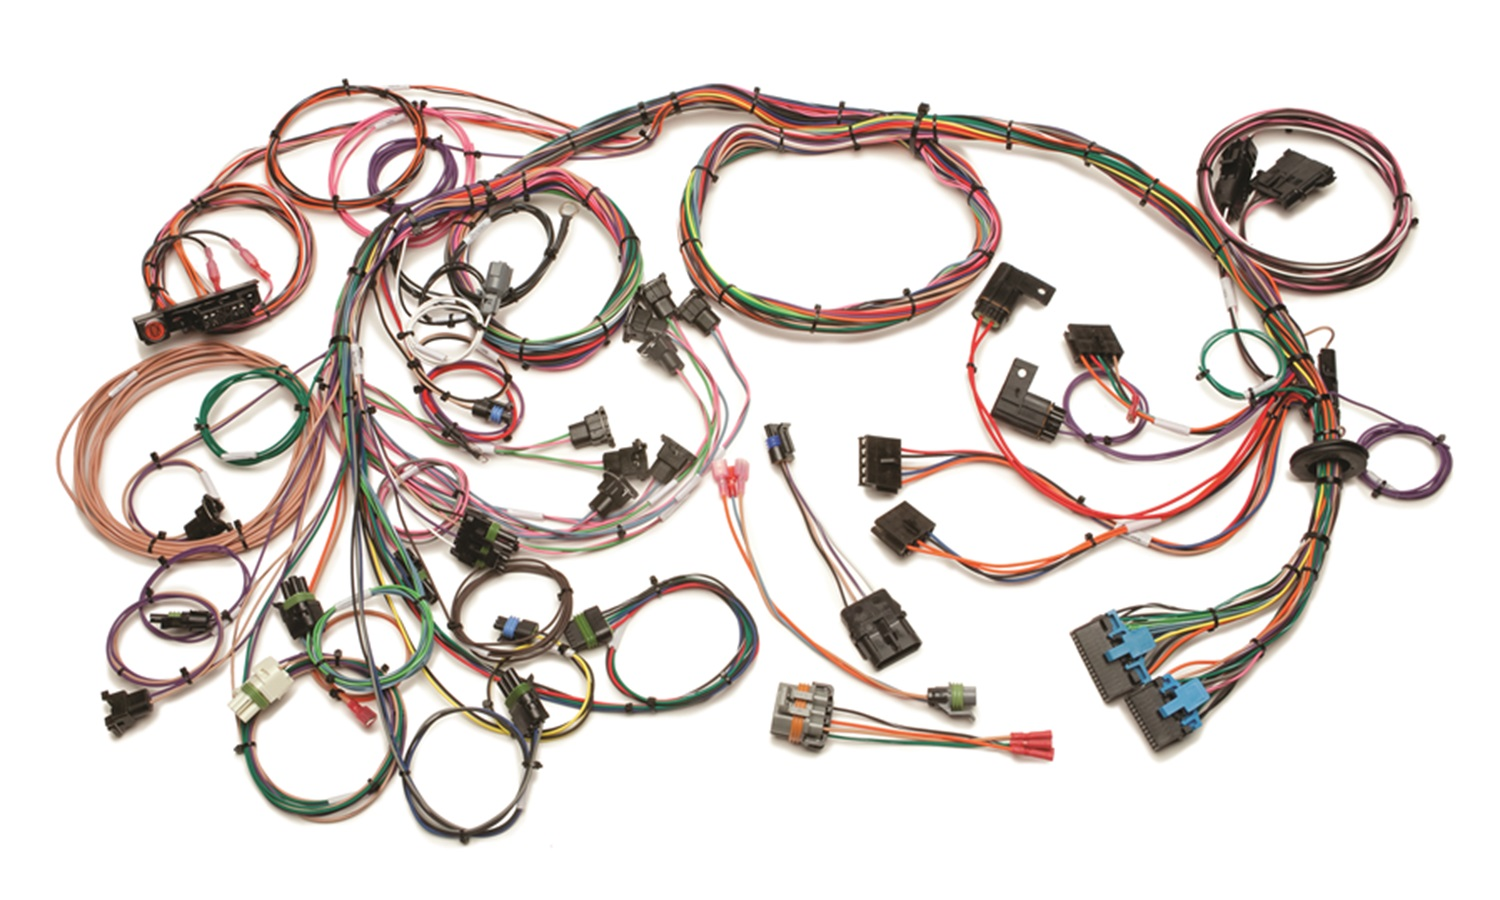 painless wiring 60202 gm tpi fuel injection harness fits ... lt1 fuel injection wiring harness 89 corvette fuel injection wiring harness